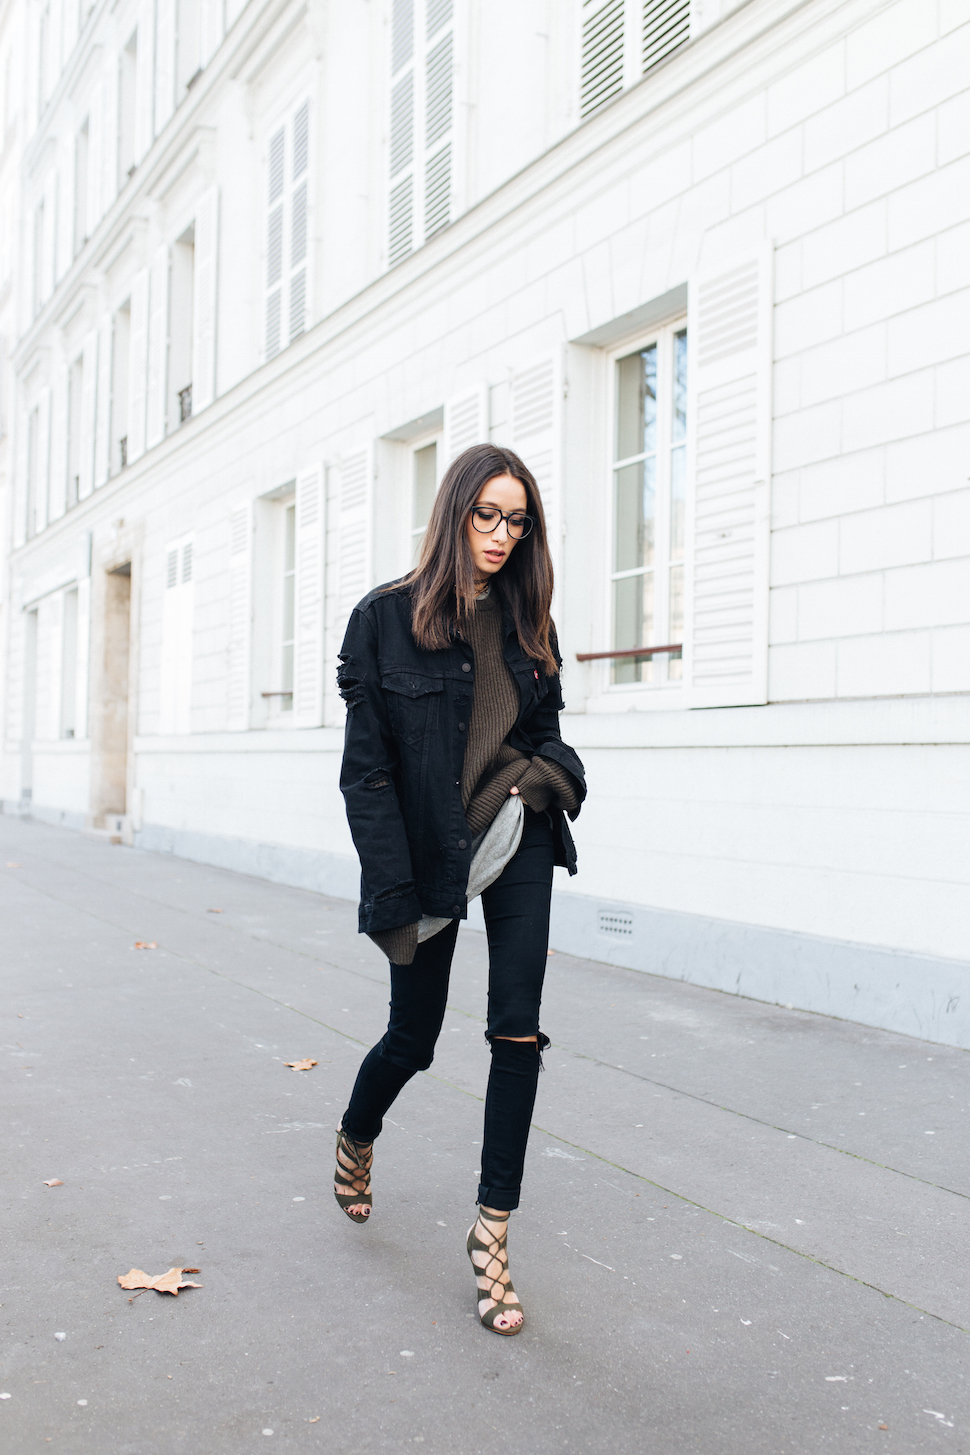 Jump on board the stunning extra long sleeves trend by wearing an oversized sweater this winter, like Alexandra Guerain. This look is perfect for every day wear, and can be dressed up or down with heels or flats! Top/Jeans: Levi's, Jacket: Carhartt, Tee: Uniqlo, Shoes: Asos.